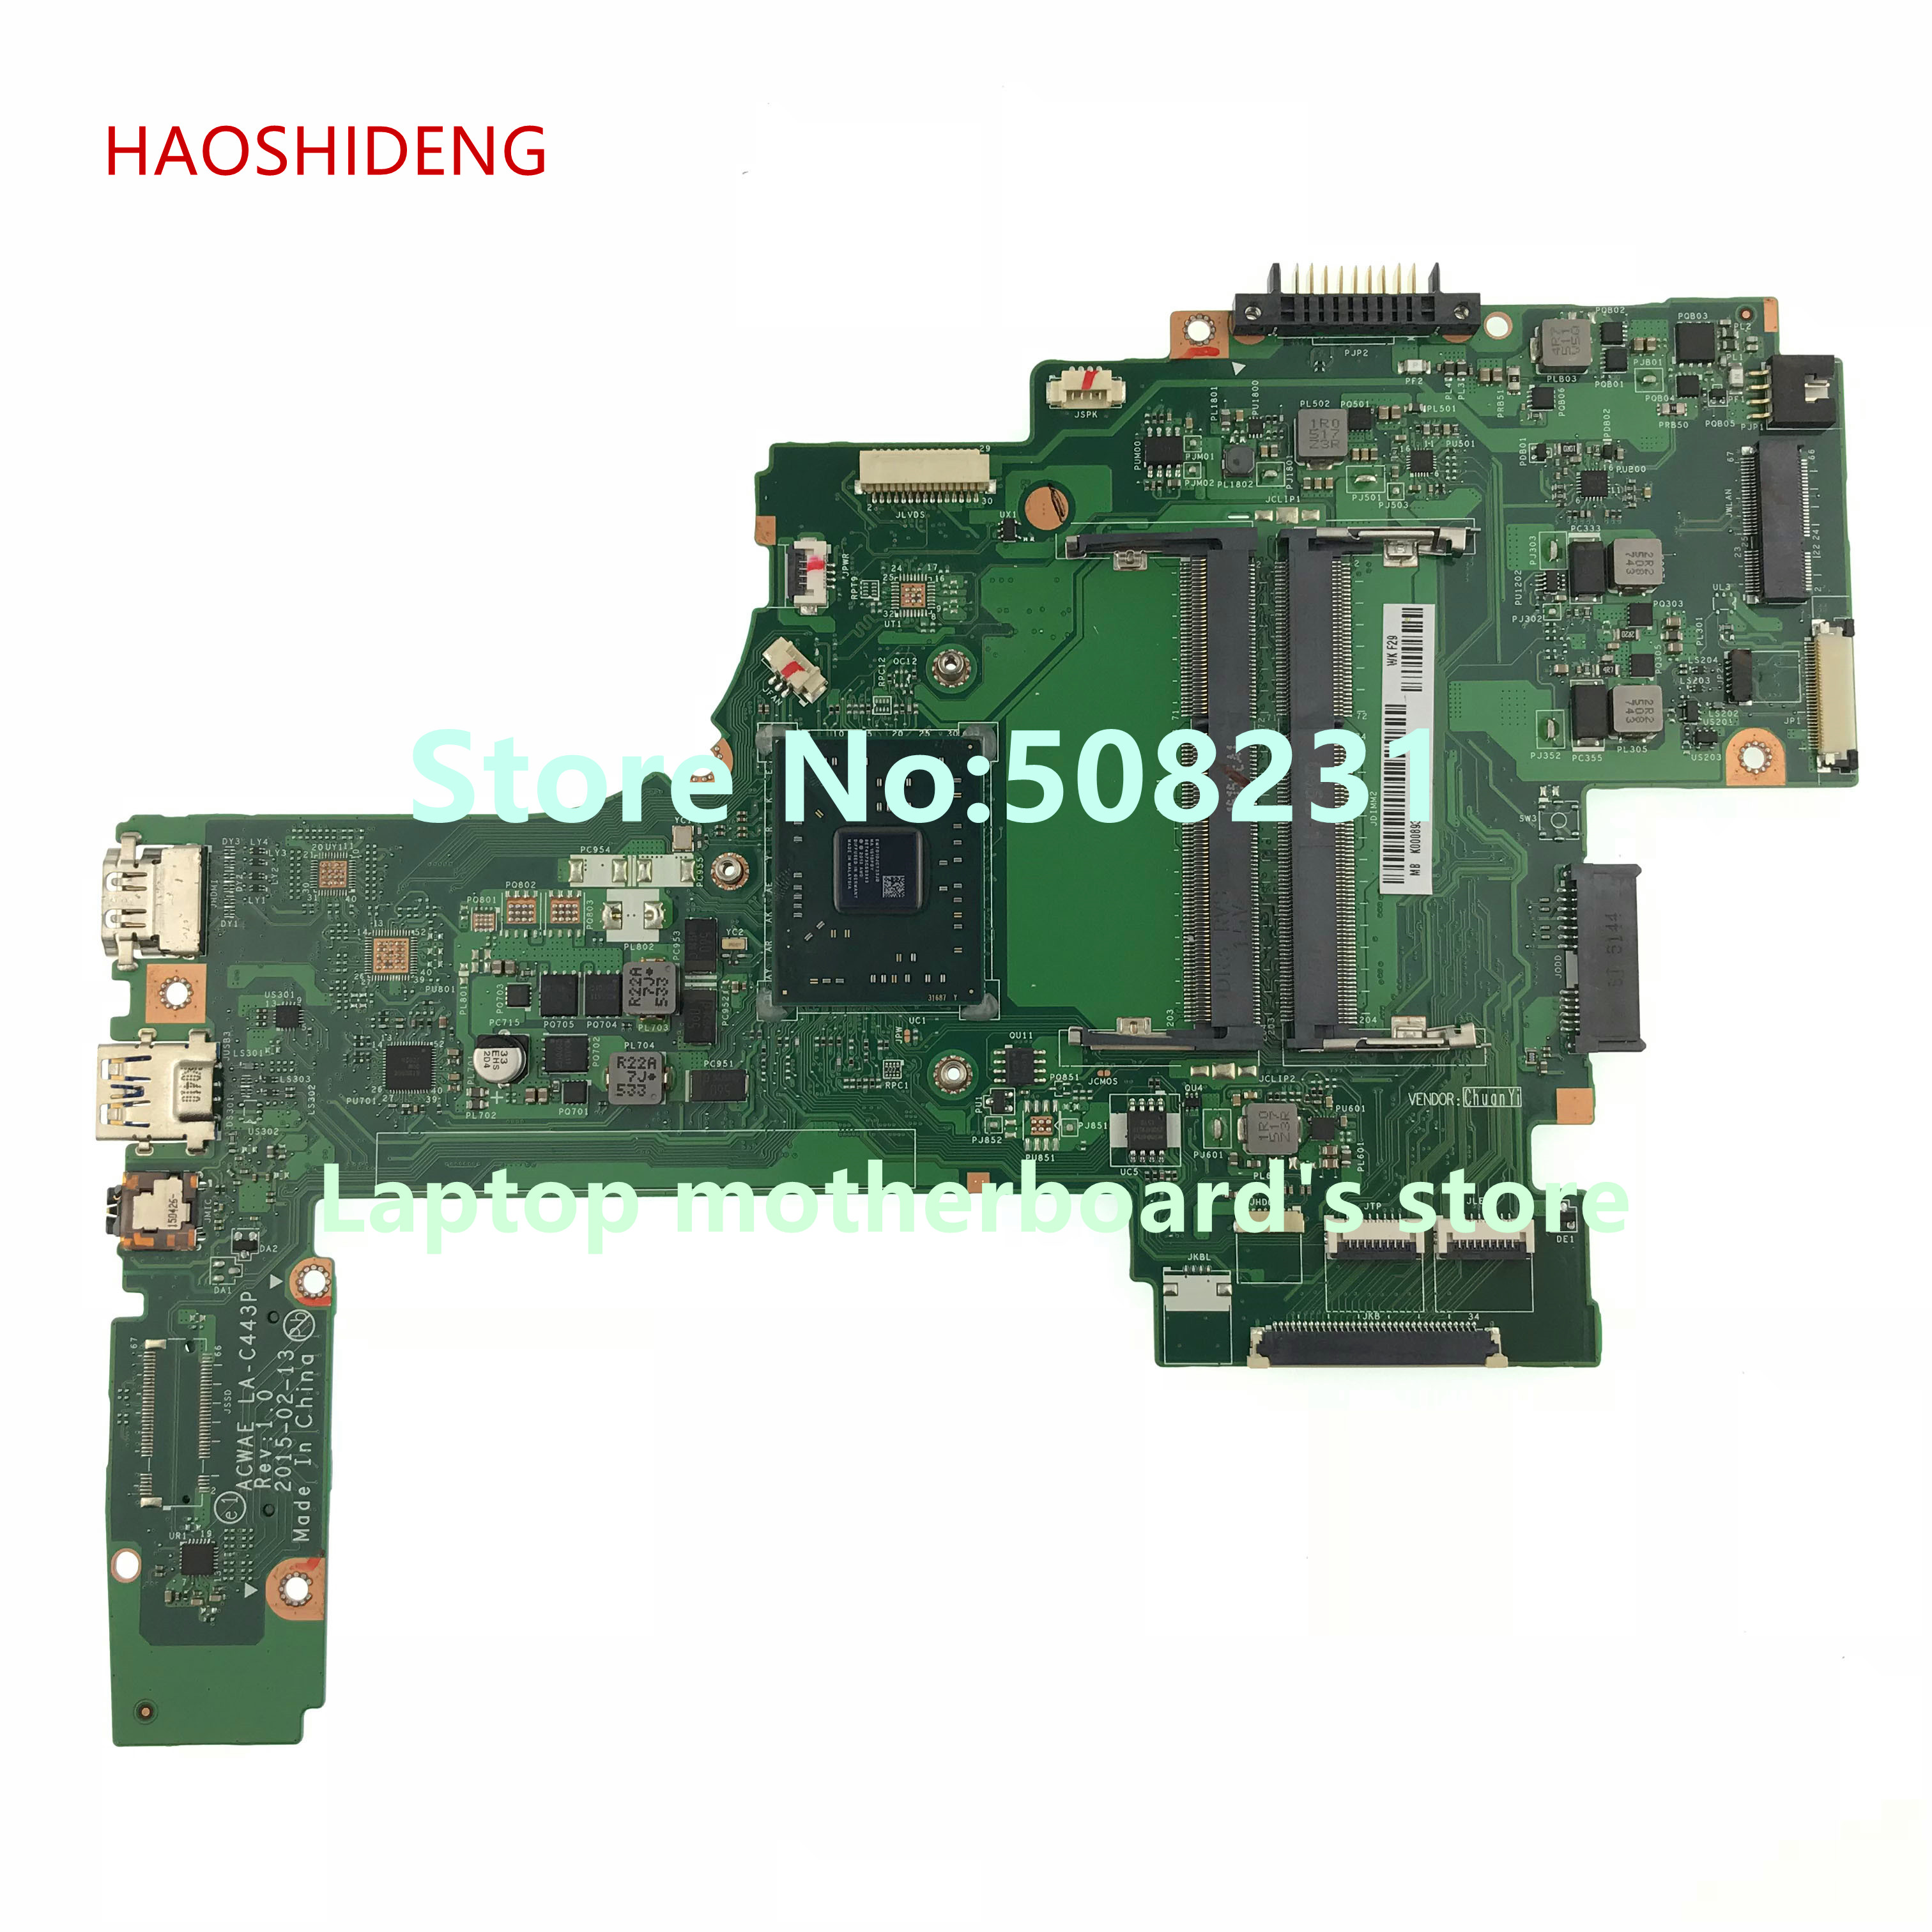 HAOSHIDENG K000893700 ACWAE LA-C443P for Toshiba L45D L45D-C4202W series Laptop Motherboard fully Tested !